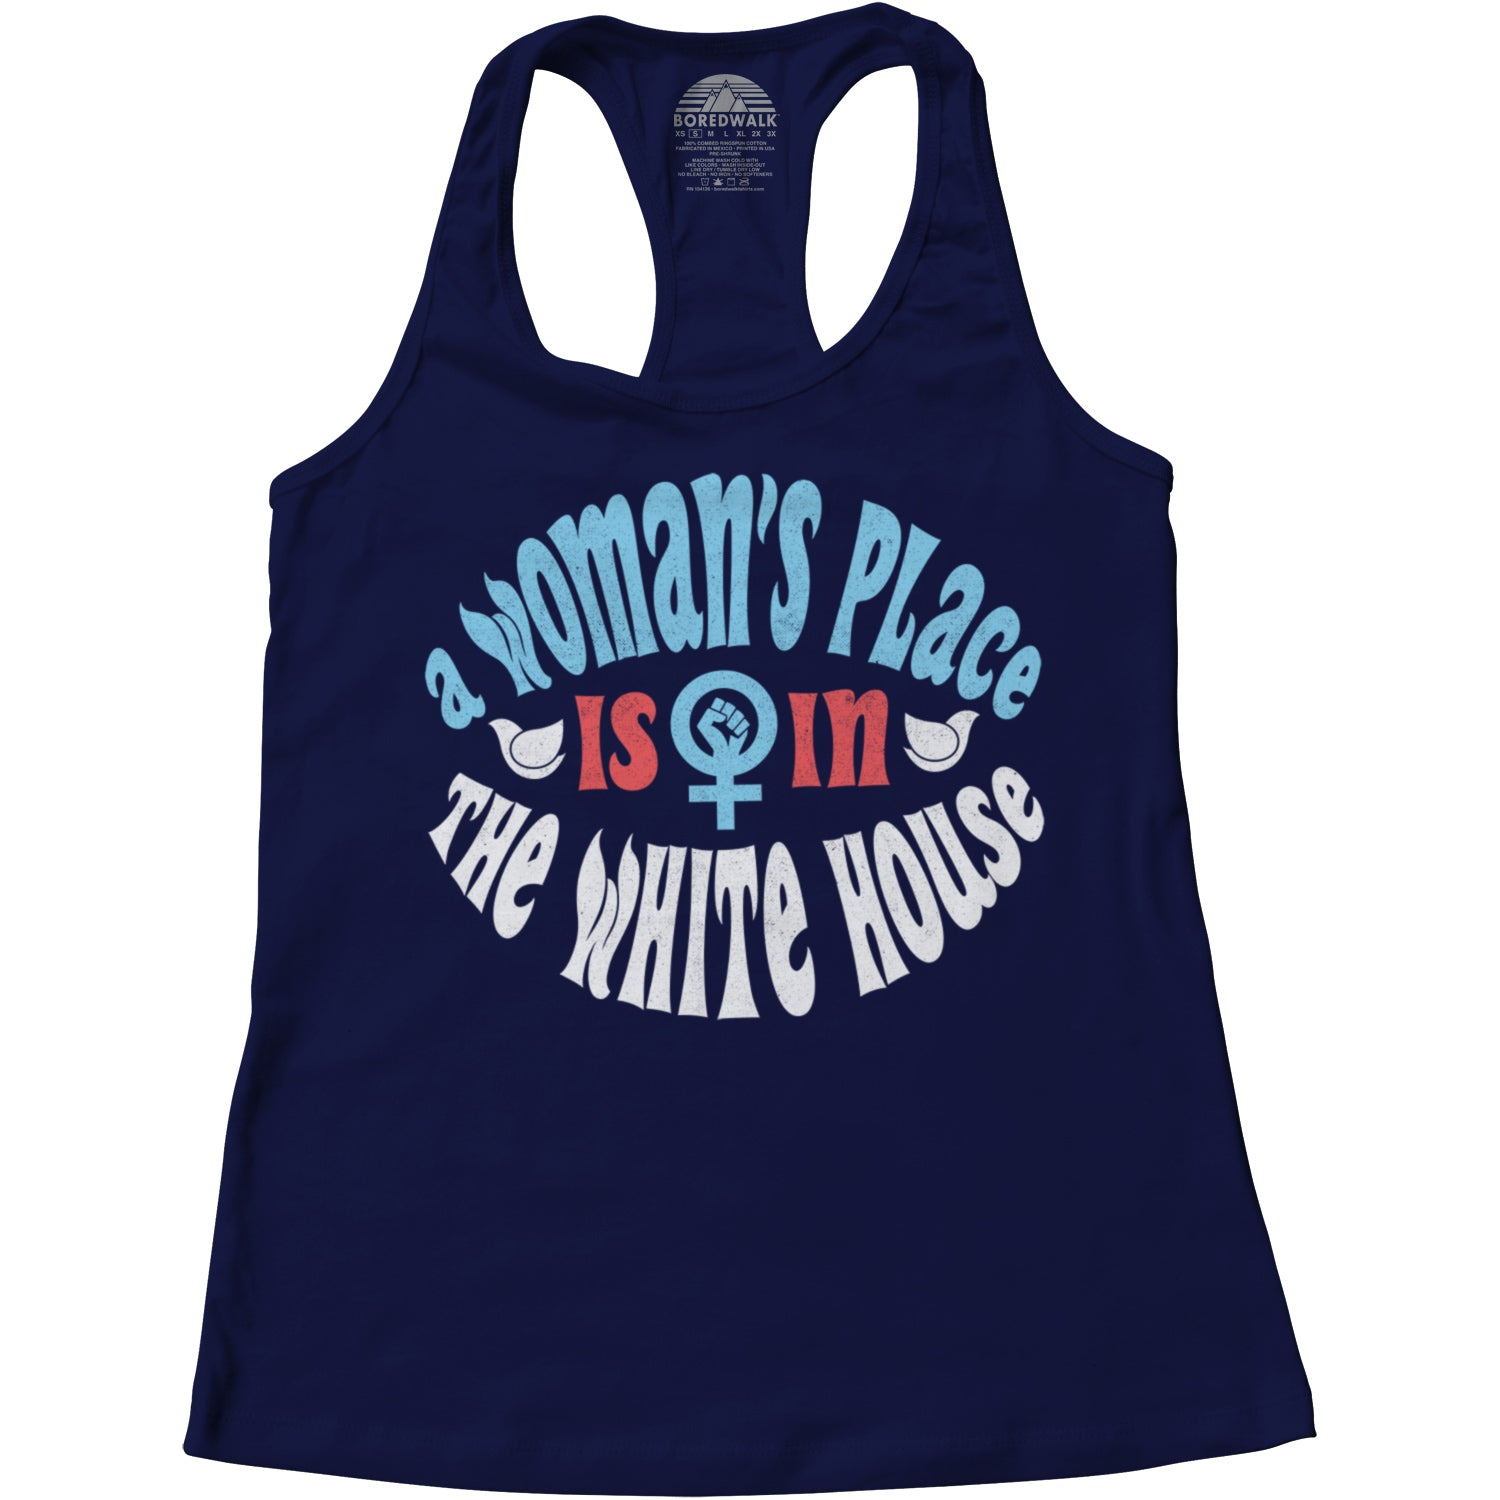 Women's A Woman's Place is in The White House Racerback Tank Top